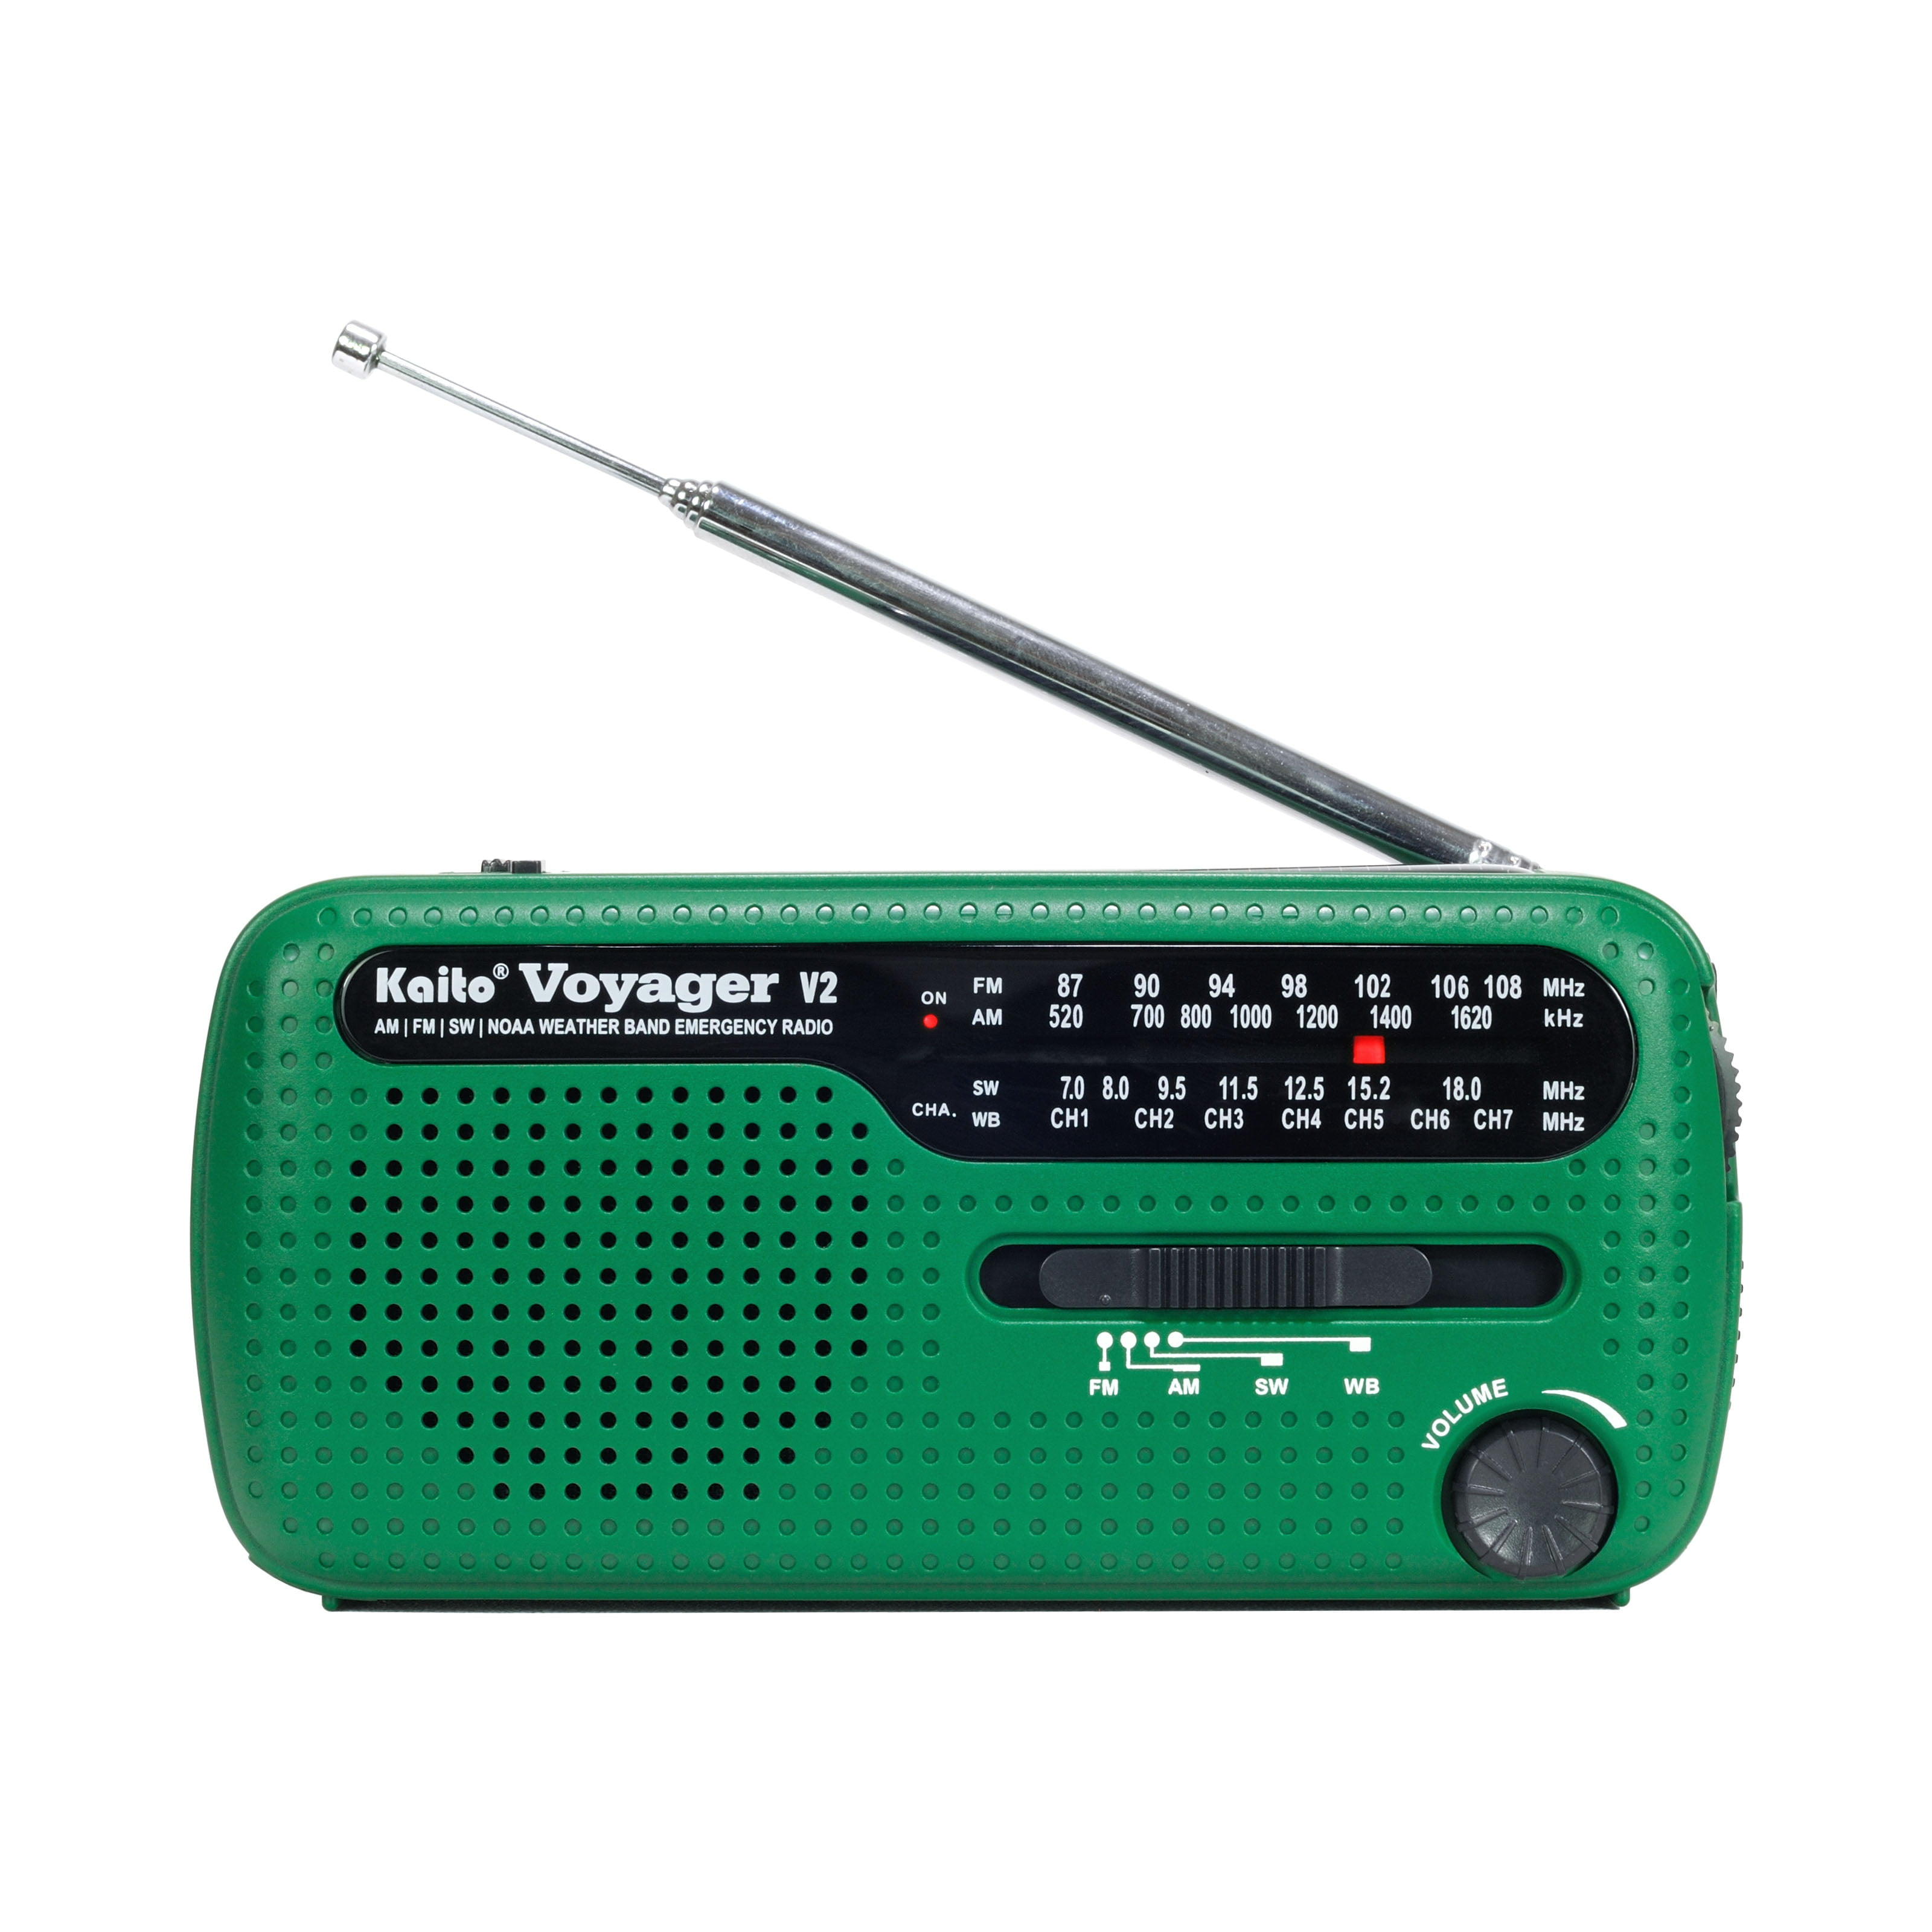 Kaito Voyager V2 AM FM Shortwave Weather Emergency Radio with Solar and Crank Green by Kaito